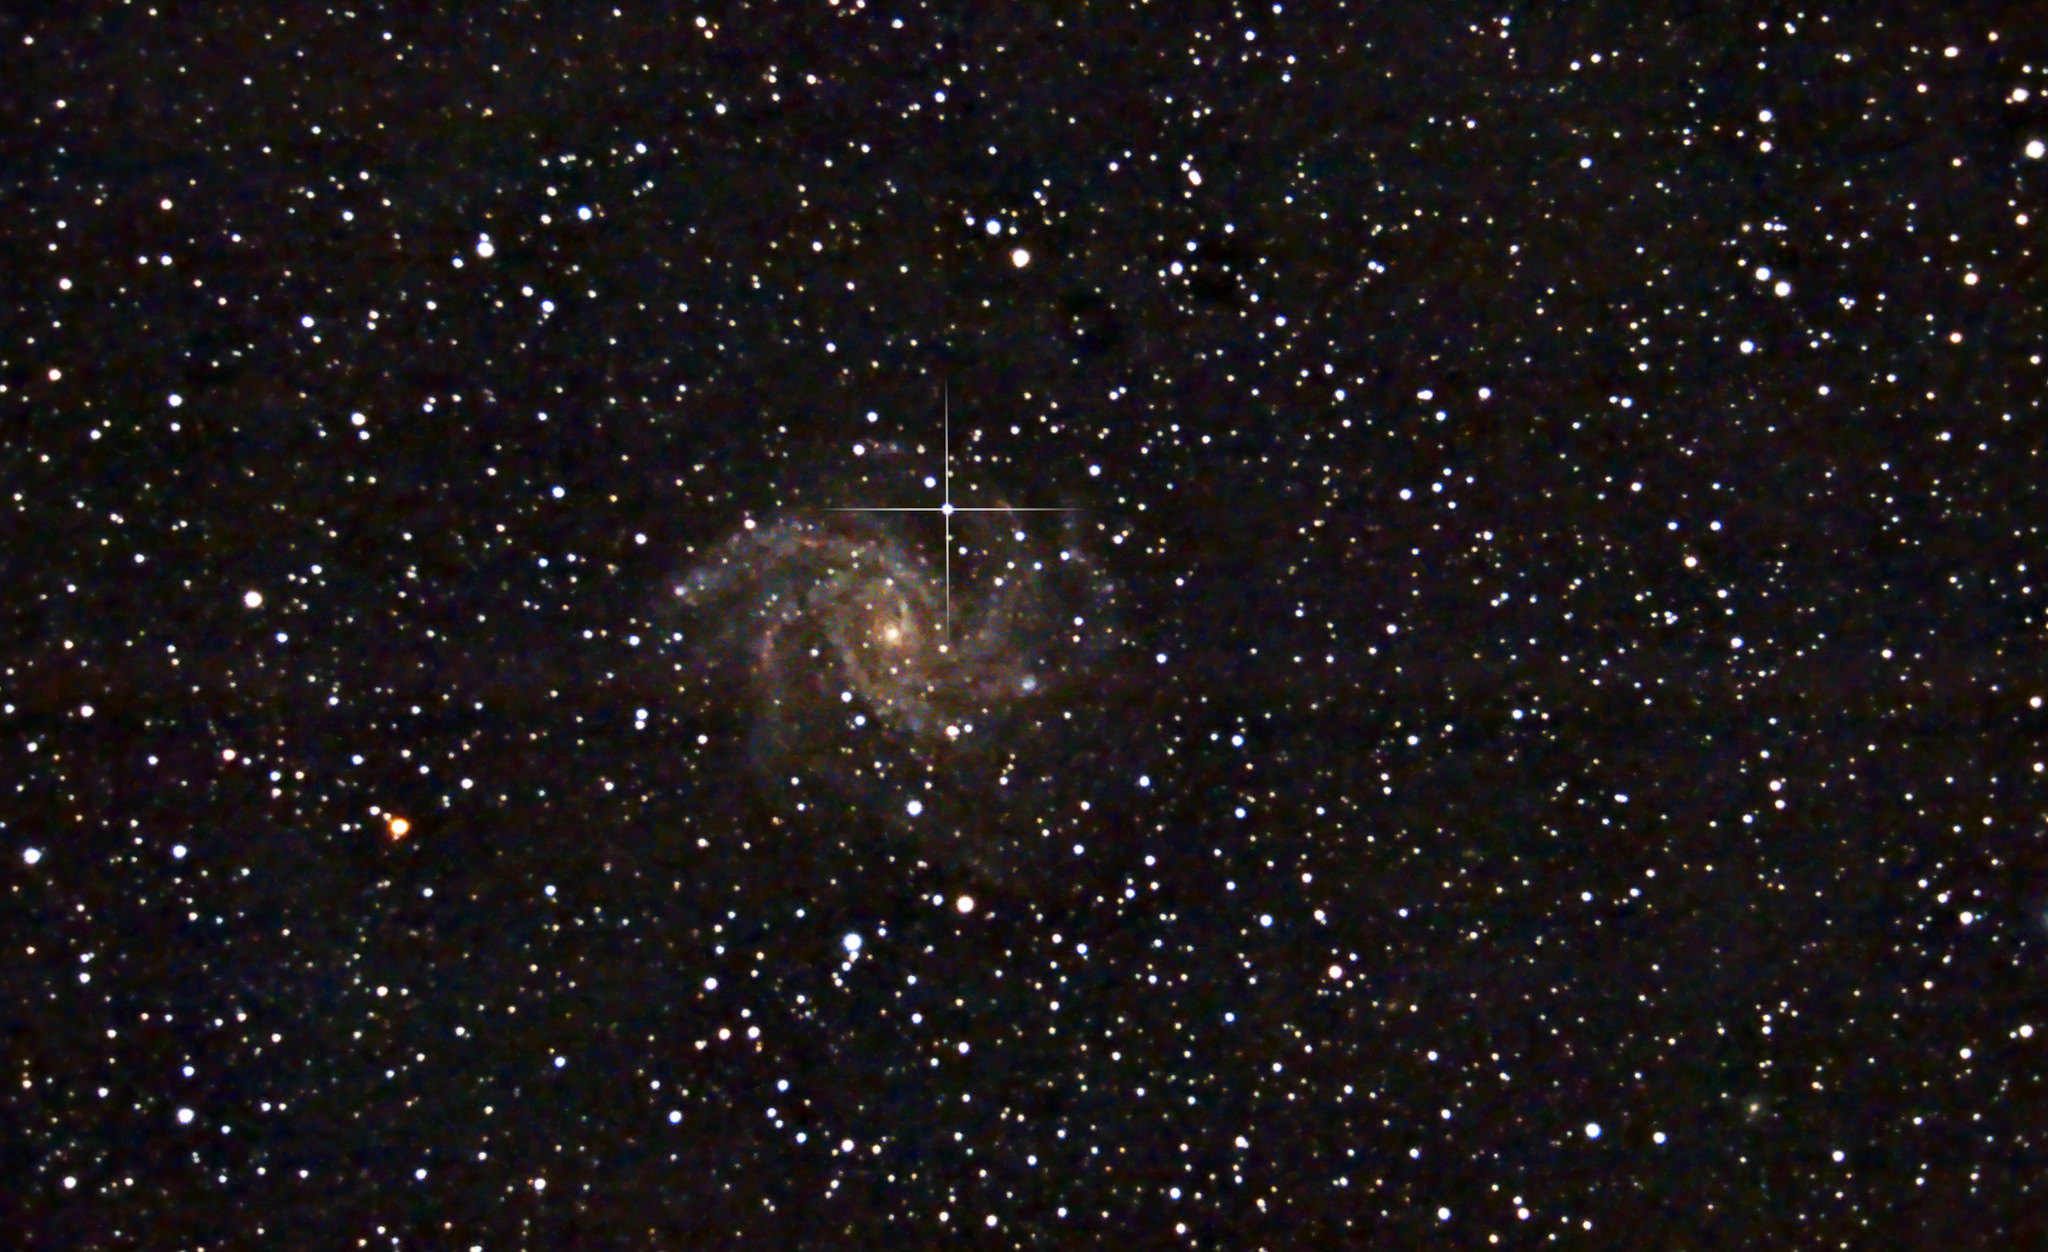 Fireworks Galaxy with Supernova